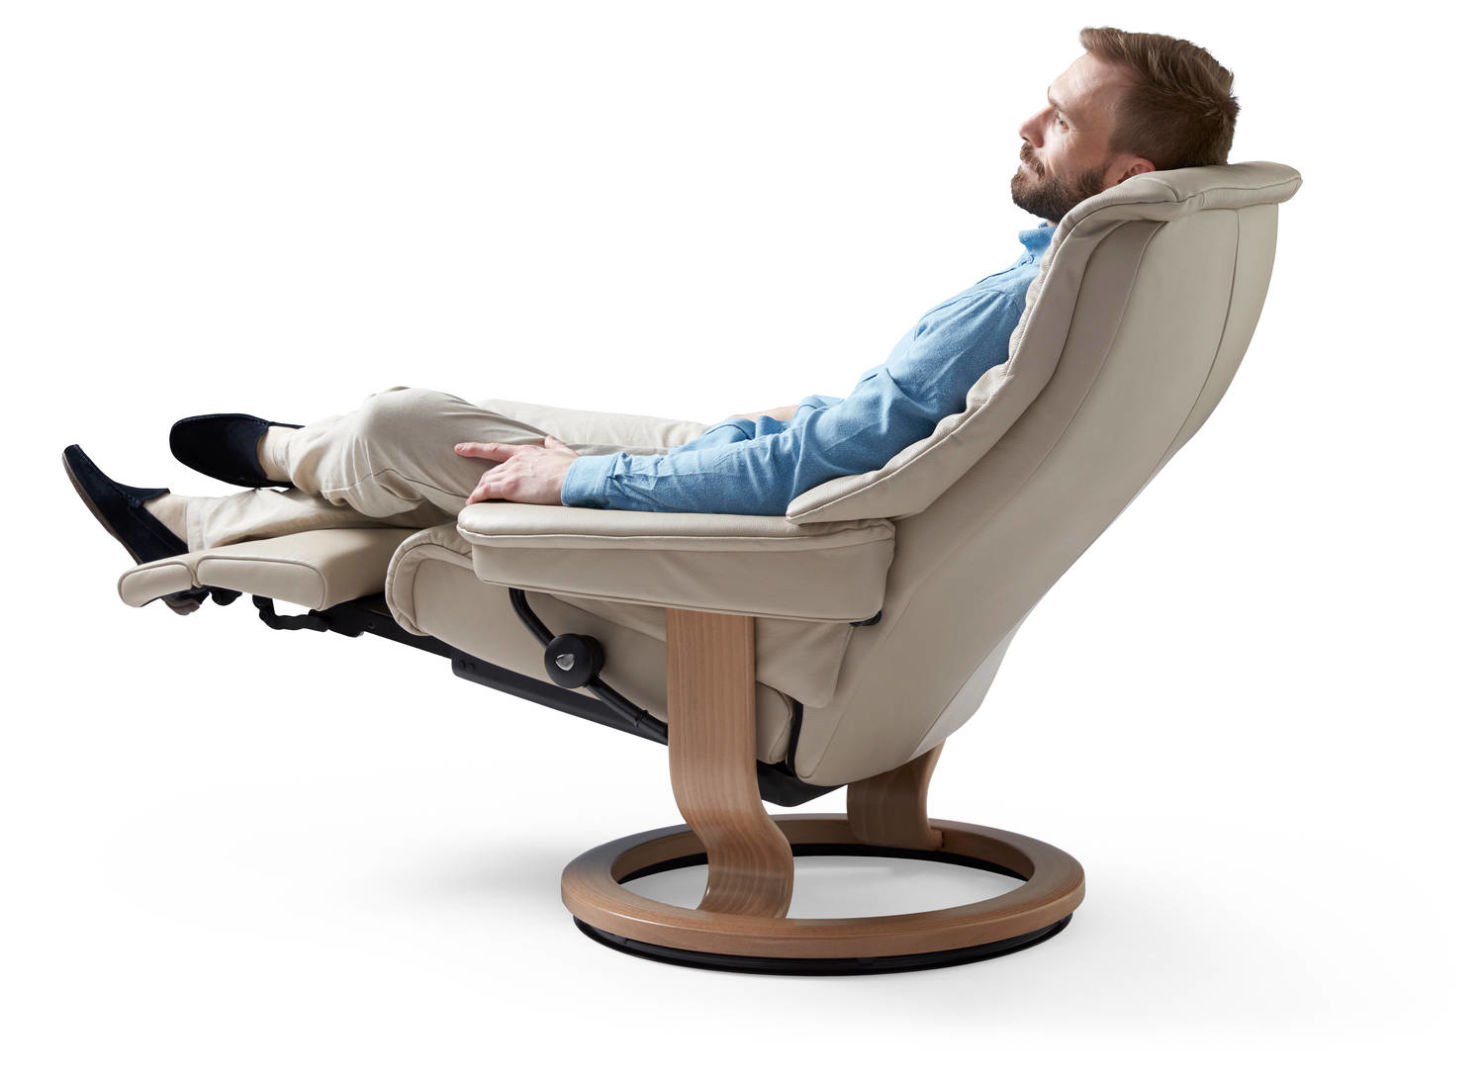 Stressless Nordic Legcomfort Stressless Live Chair With Legcomfort The Century House Madison Wi